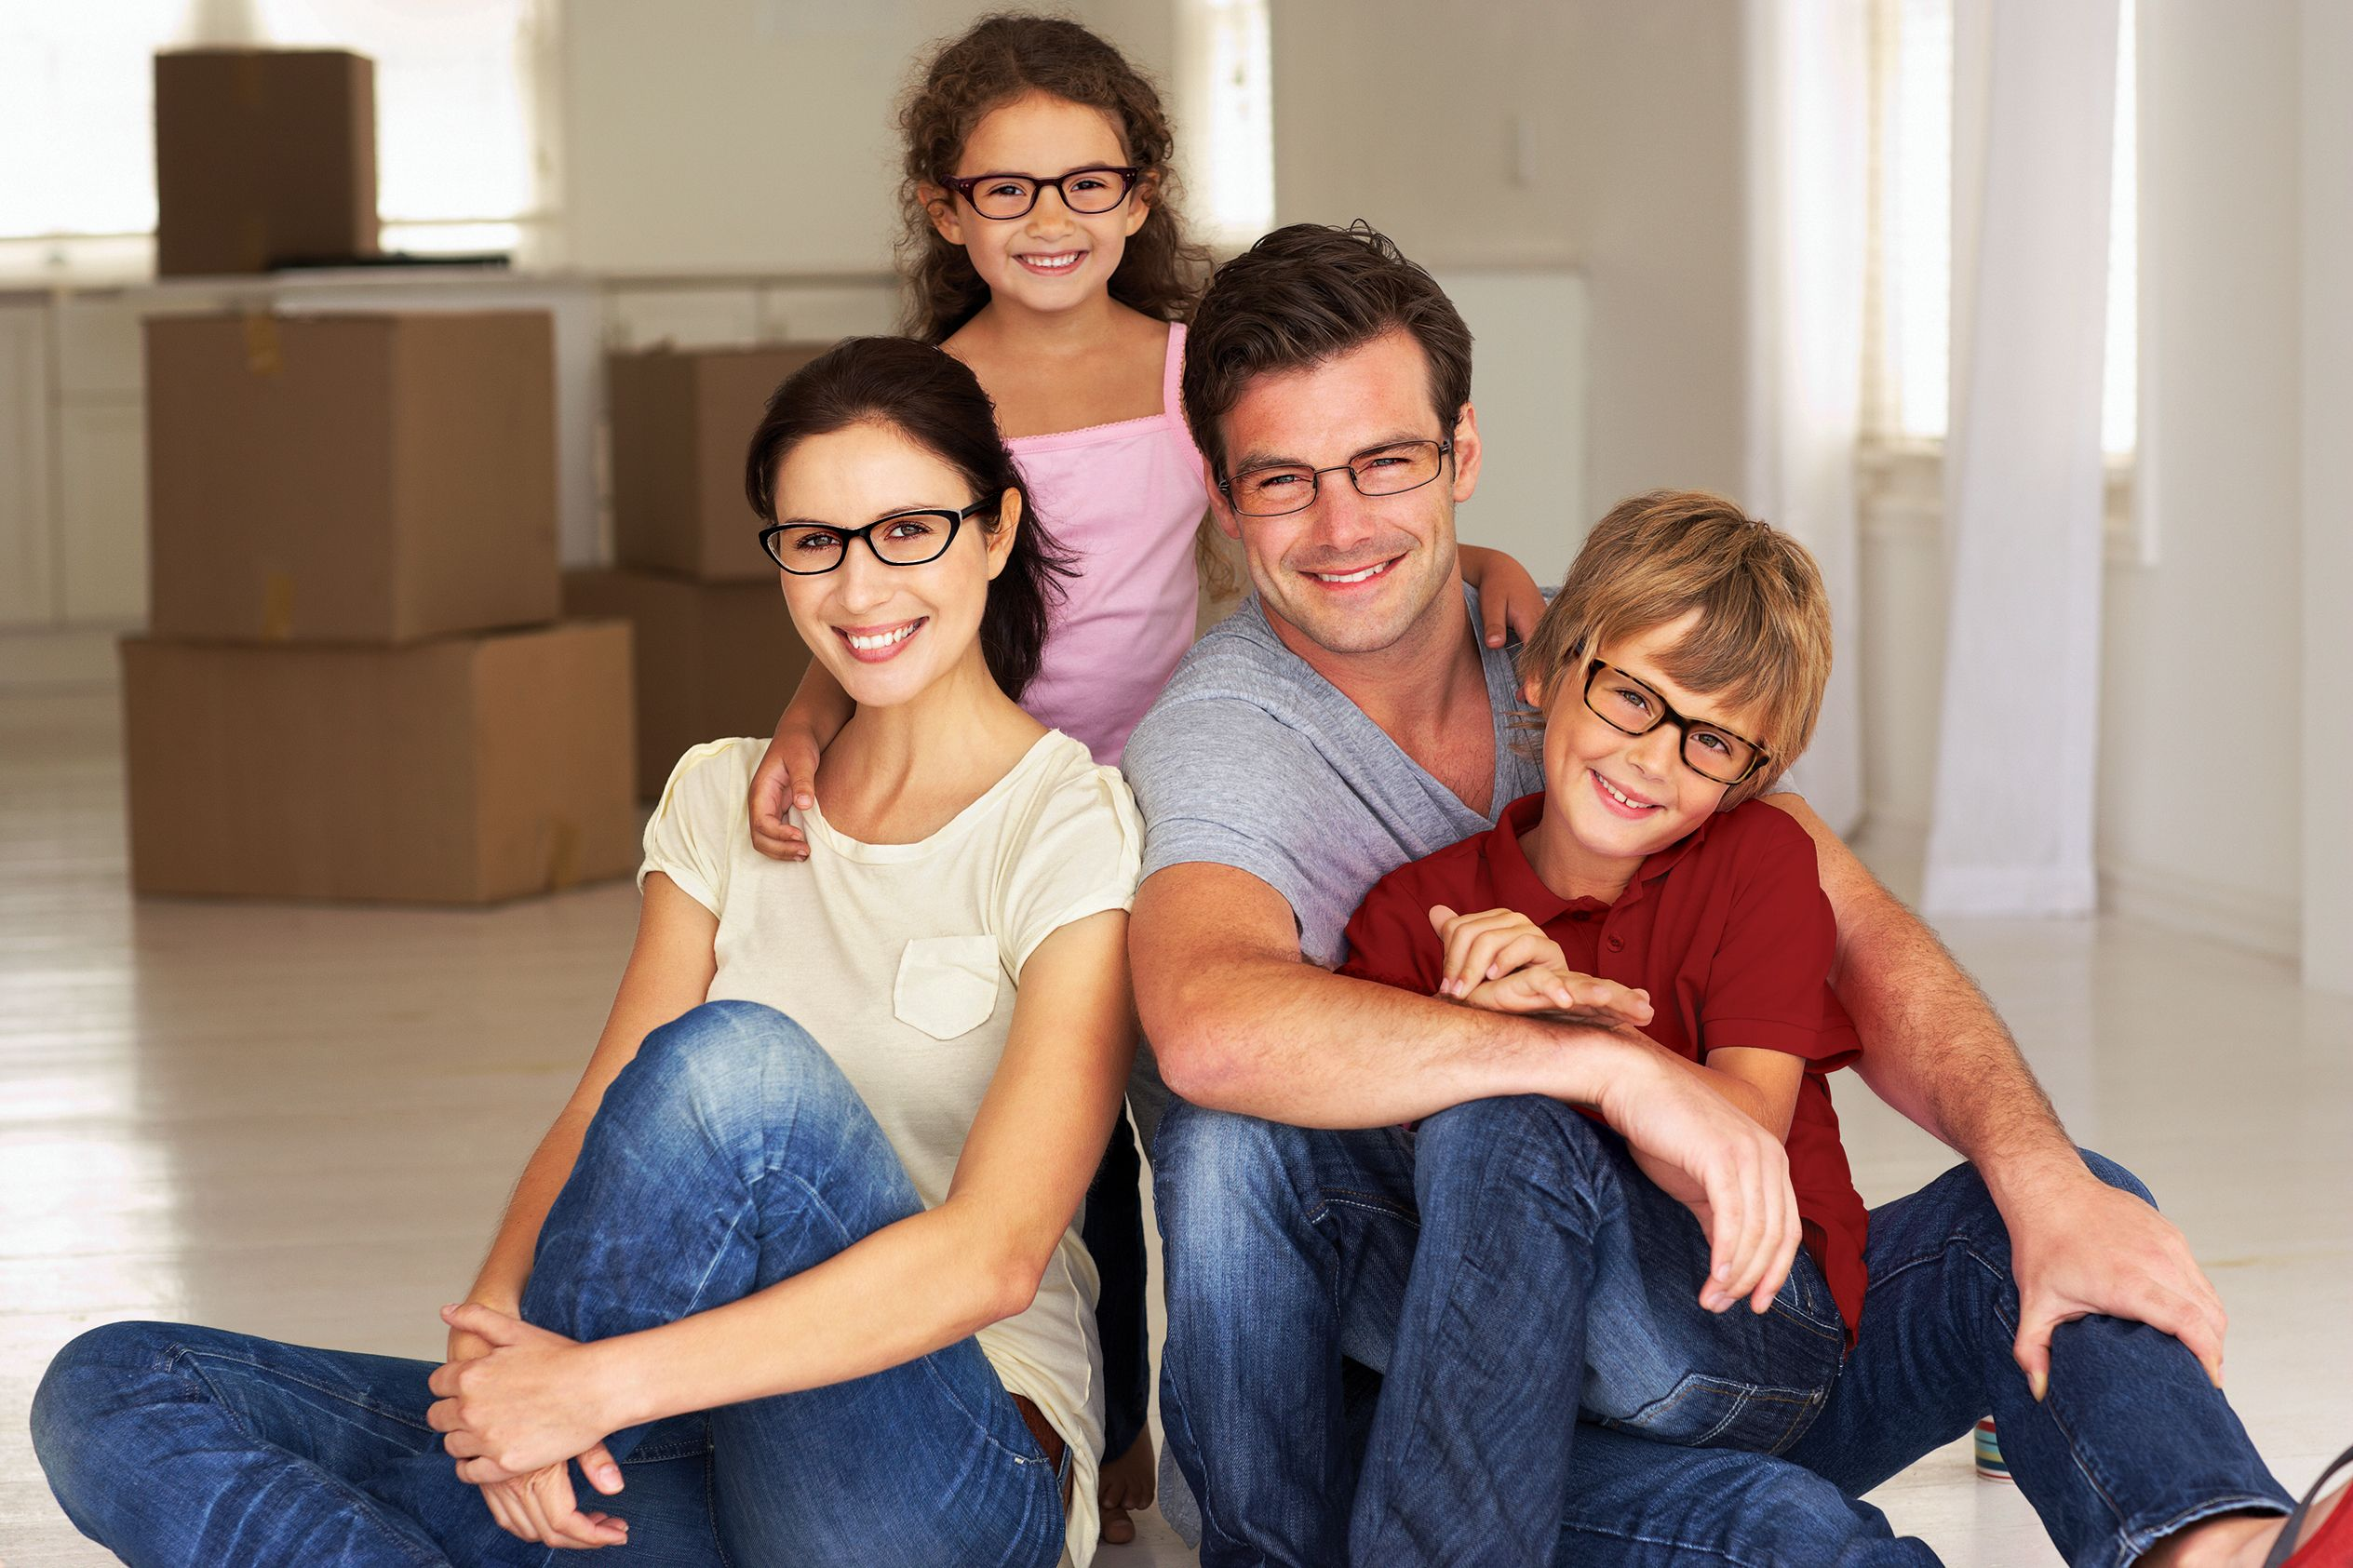 Affordable, fashionable eyewear for the entire family, by Modern Optical International